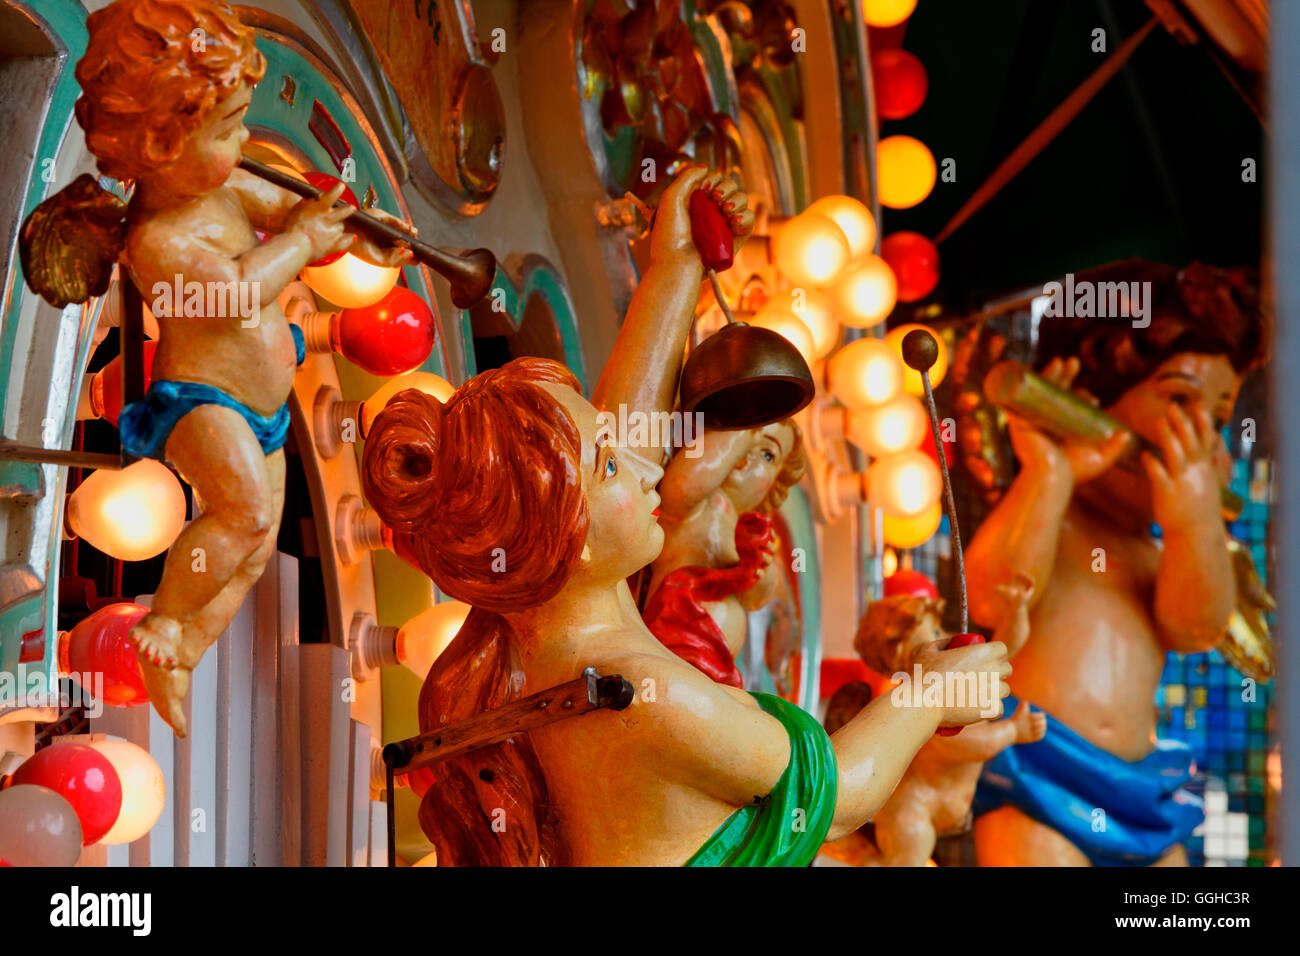 Detail of a fairground organ at the Auer Dult market, Au, Munich, Upper Bavaria, Bavaria, Germany - Stock Image